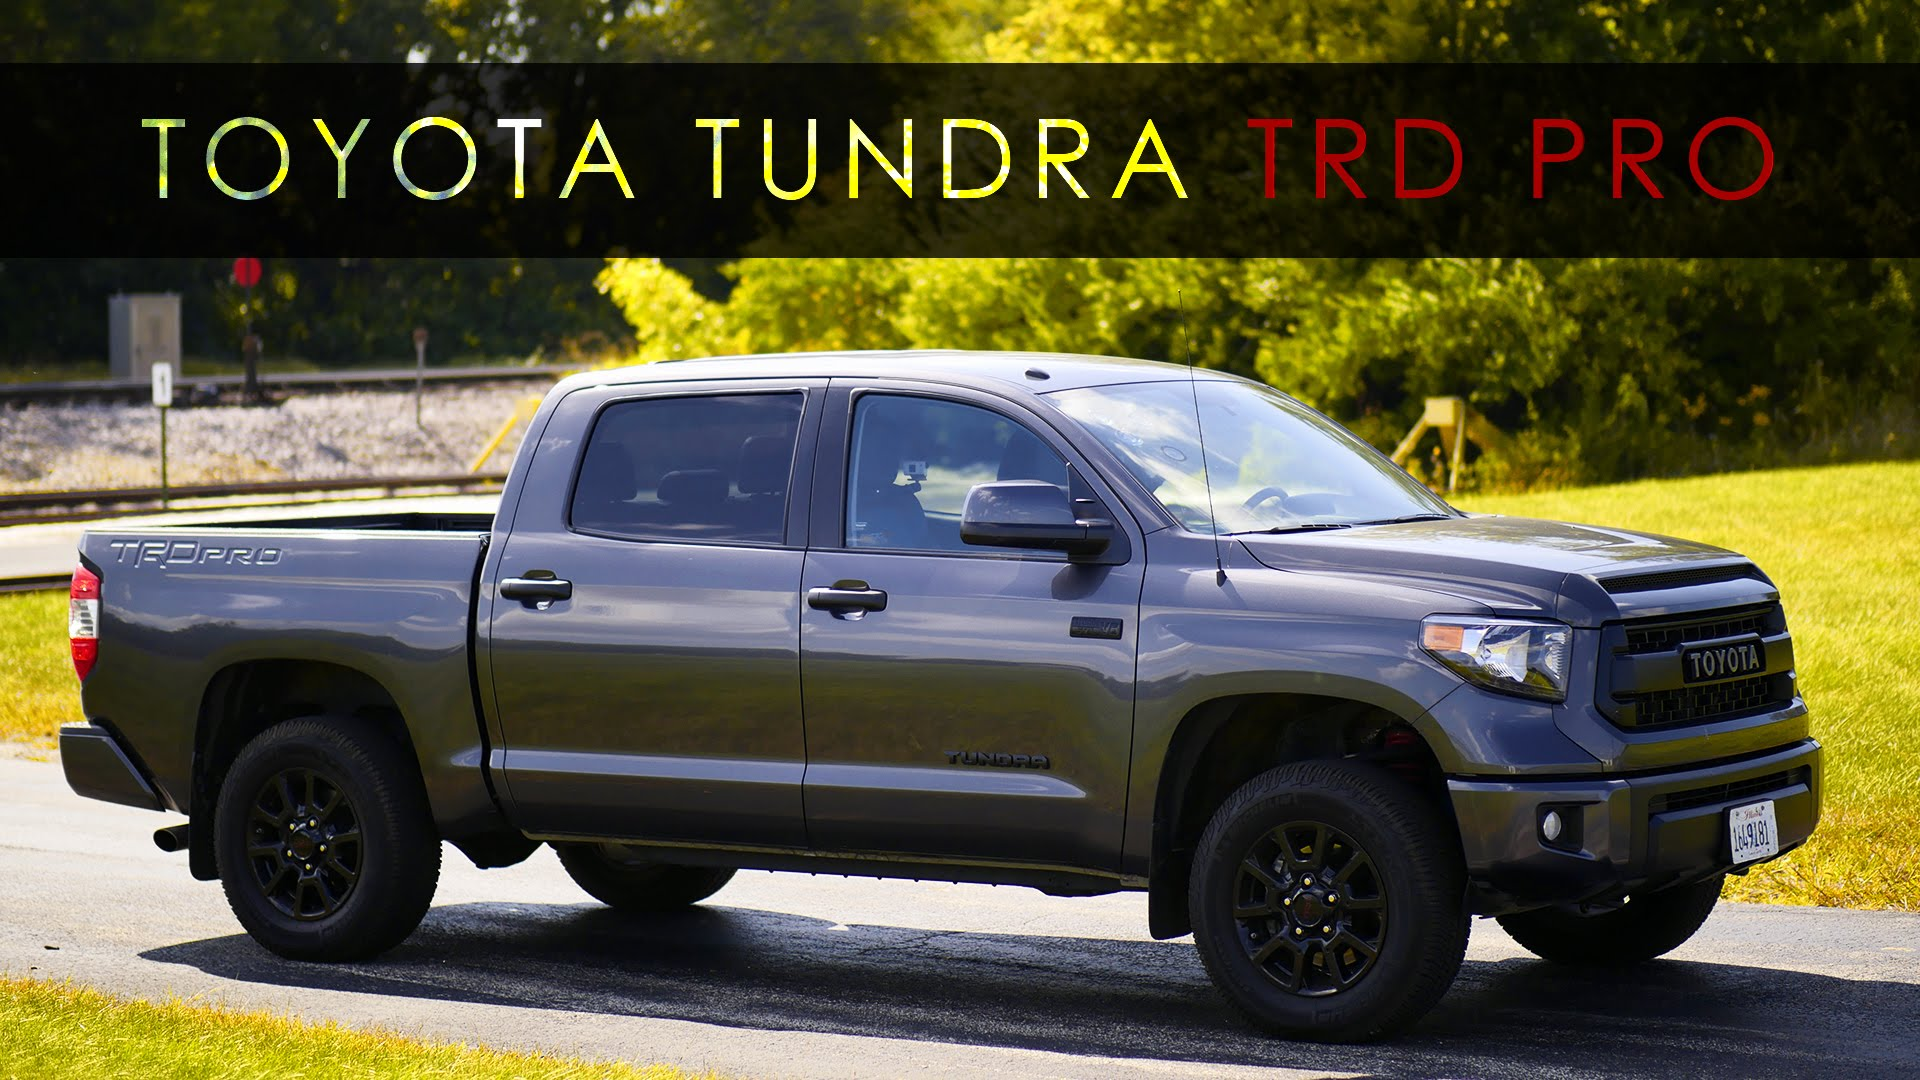 5 Things You Need To Know About The 2017 Toyota Tundra Trd Pro Gearopen Com